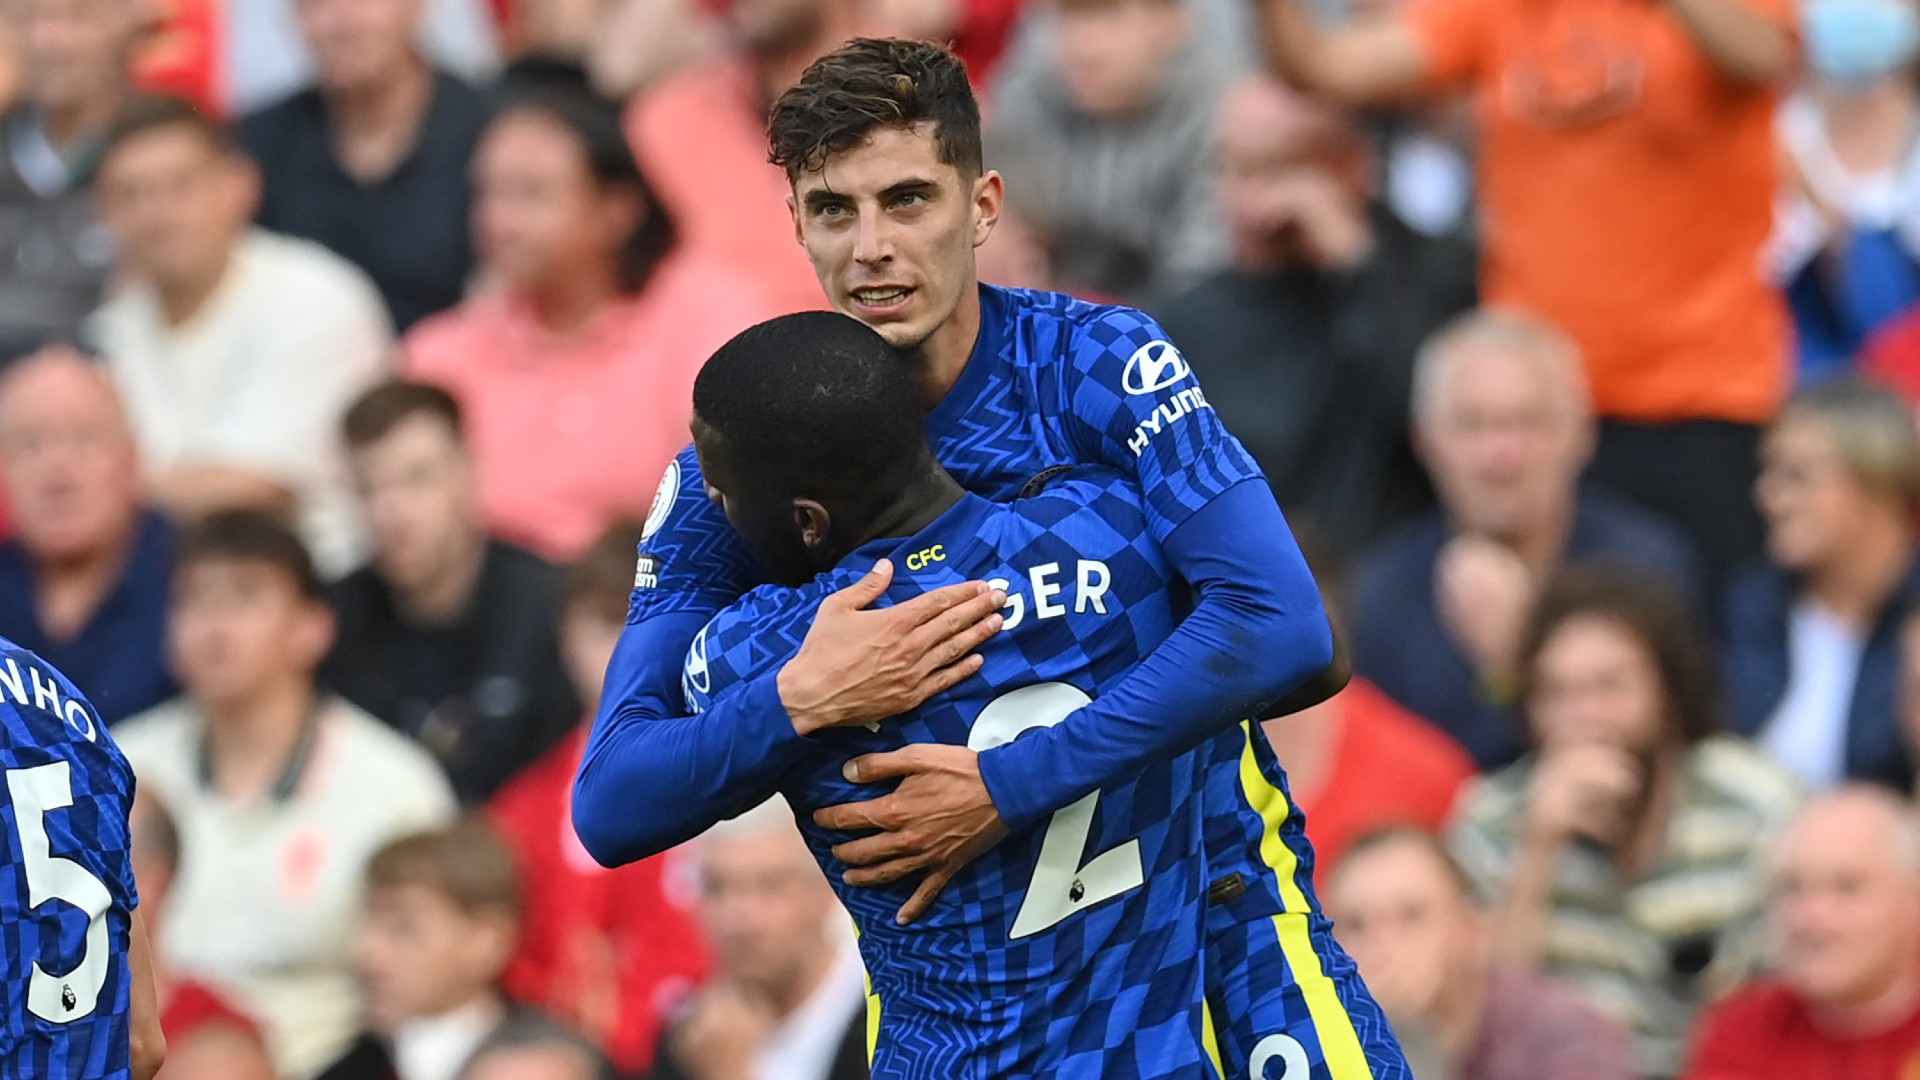 'We won't let him relax for a second' – Tuchel determined to get the best out of Chelsea star Havertz